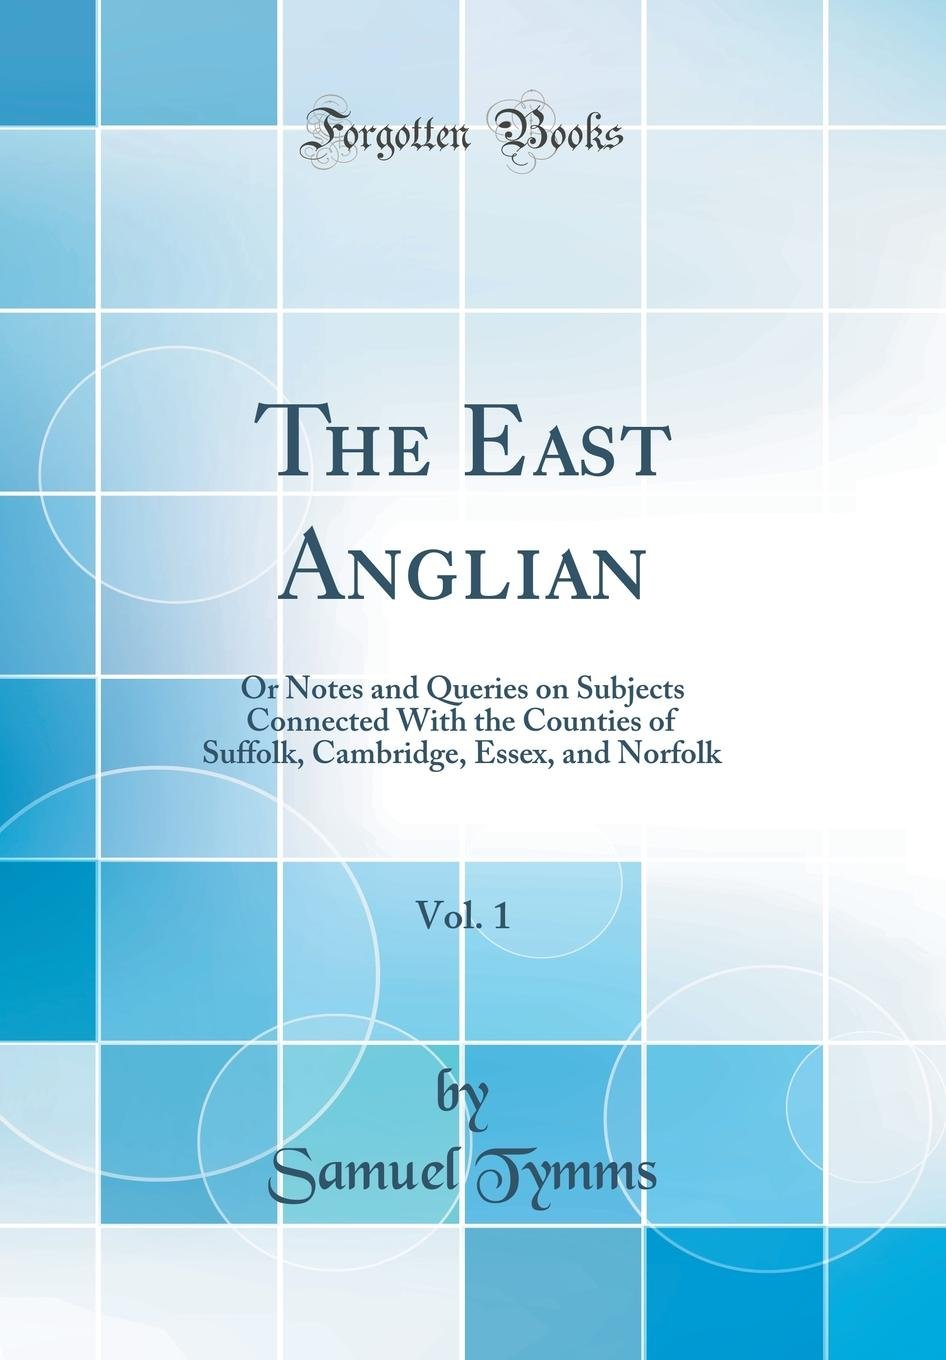 Download The East Anglian, Vol. 1: Or Notes and Queries on Subjects Connected with the Counties of Suffolk, Cambridge, Essex, and Norfolk (Classic Reprint) ebook